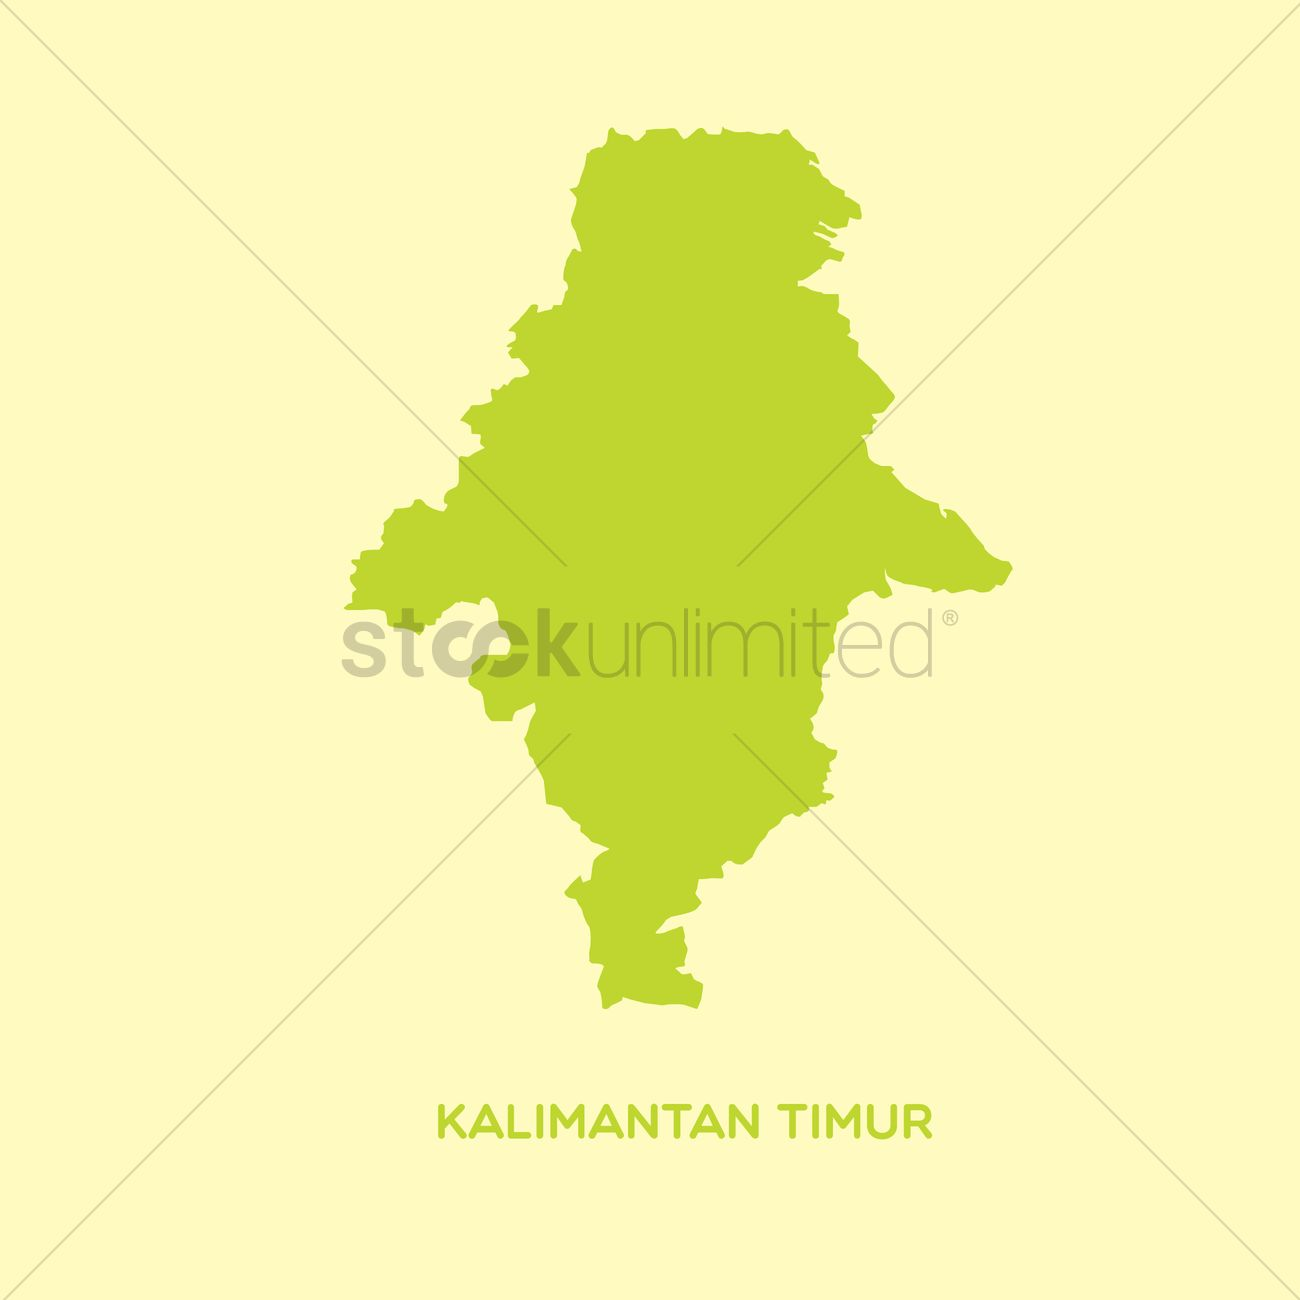 Map of kalimantan timur Vector Image.